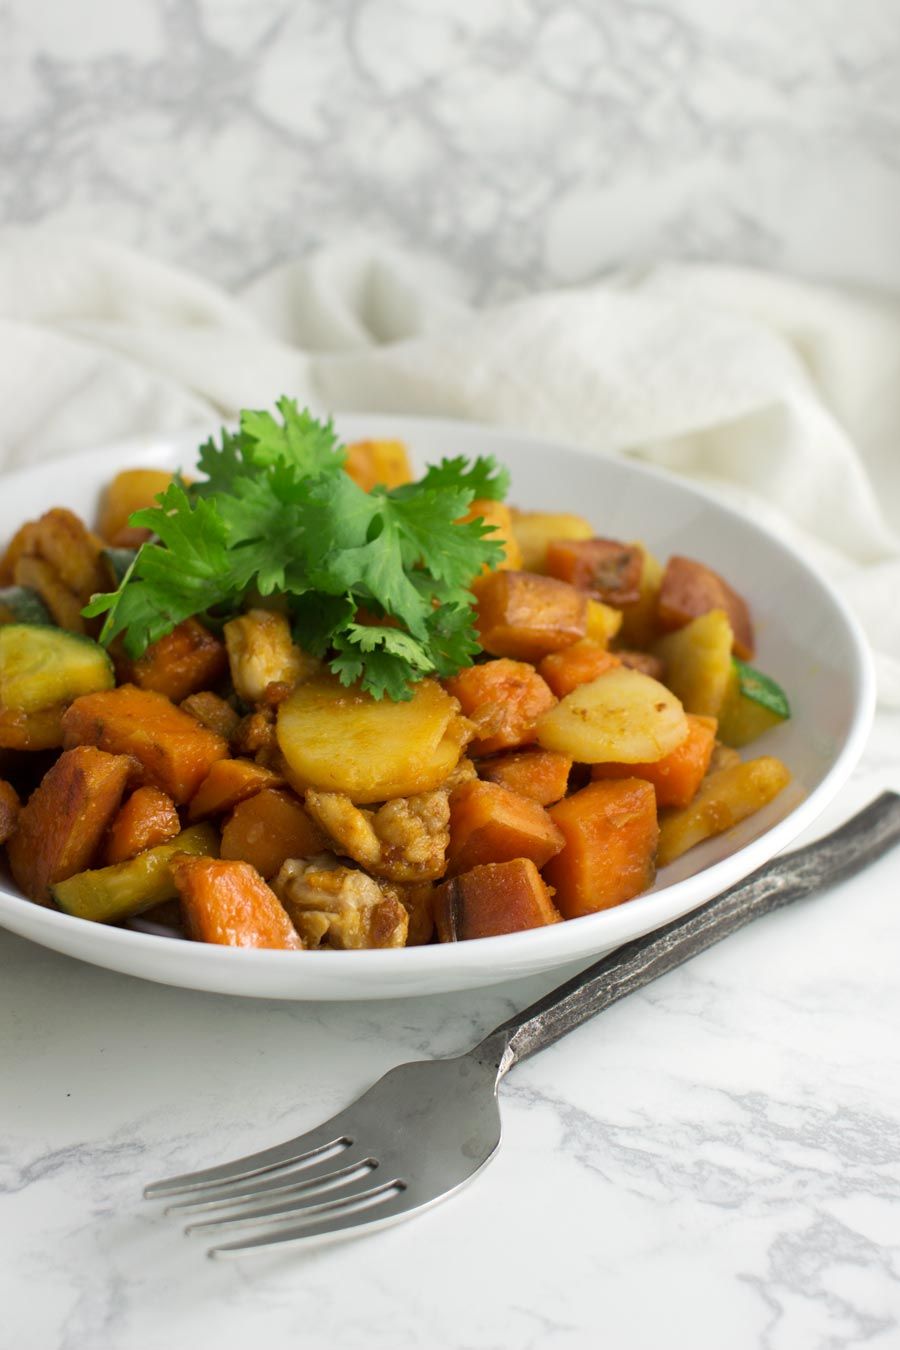 Asian Sweet Potato and Pineapple Stir-Fry recipe from acleanplate.com #paleo #aip #glutenfree